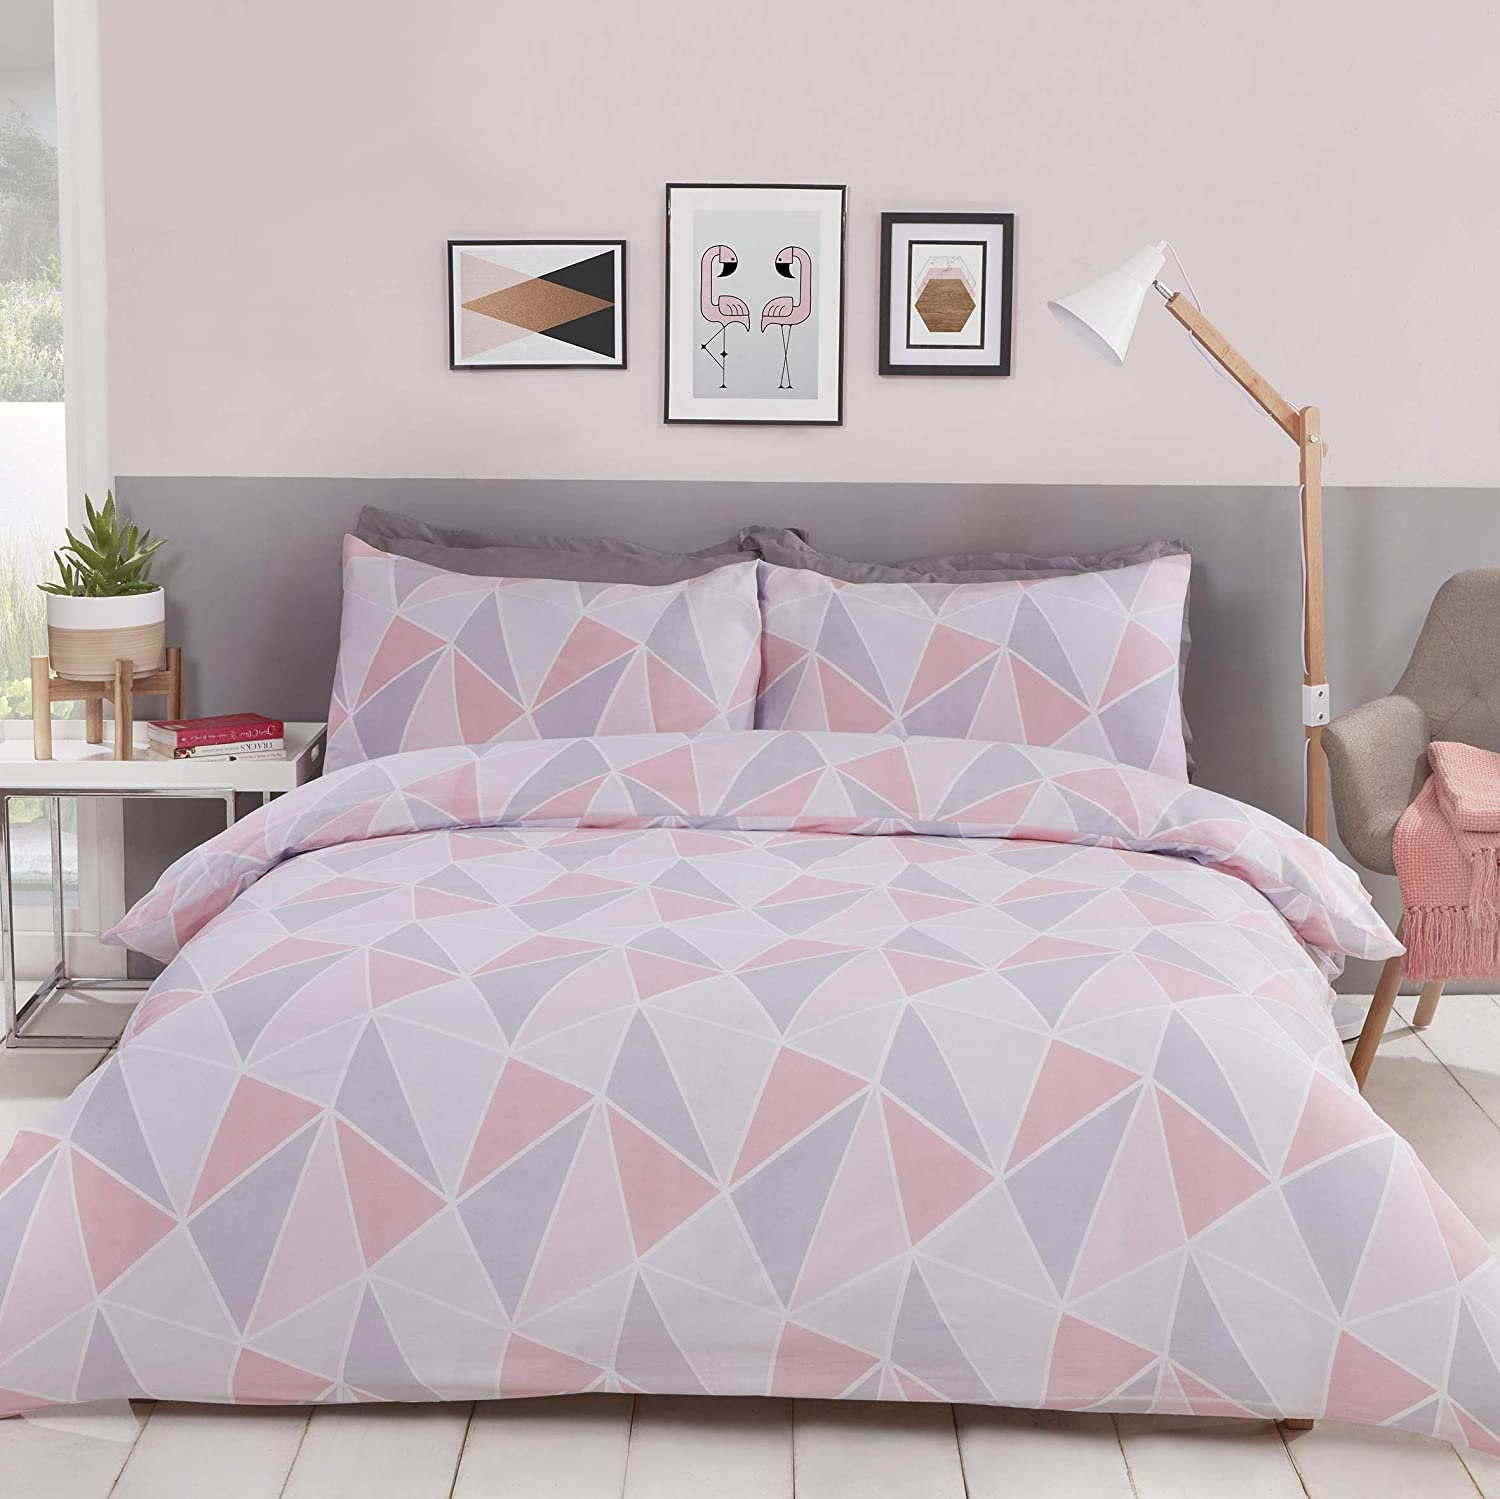 Myhome Geometric Double Duvet Quilt Cover Bedding Set Pink Grey